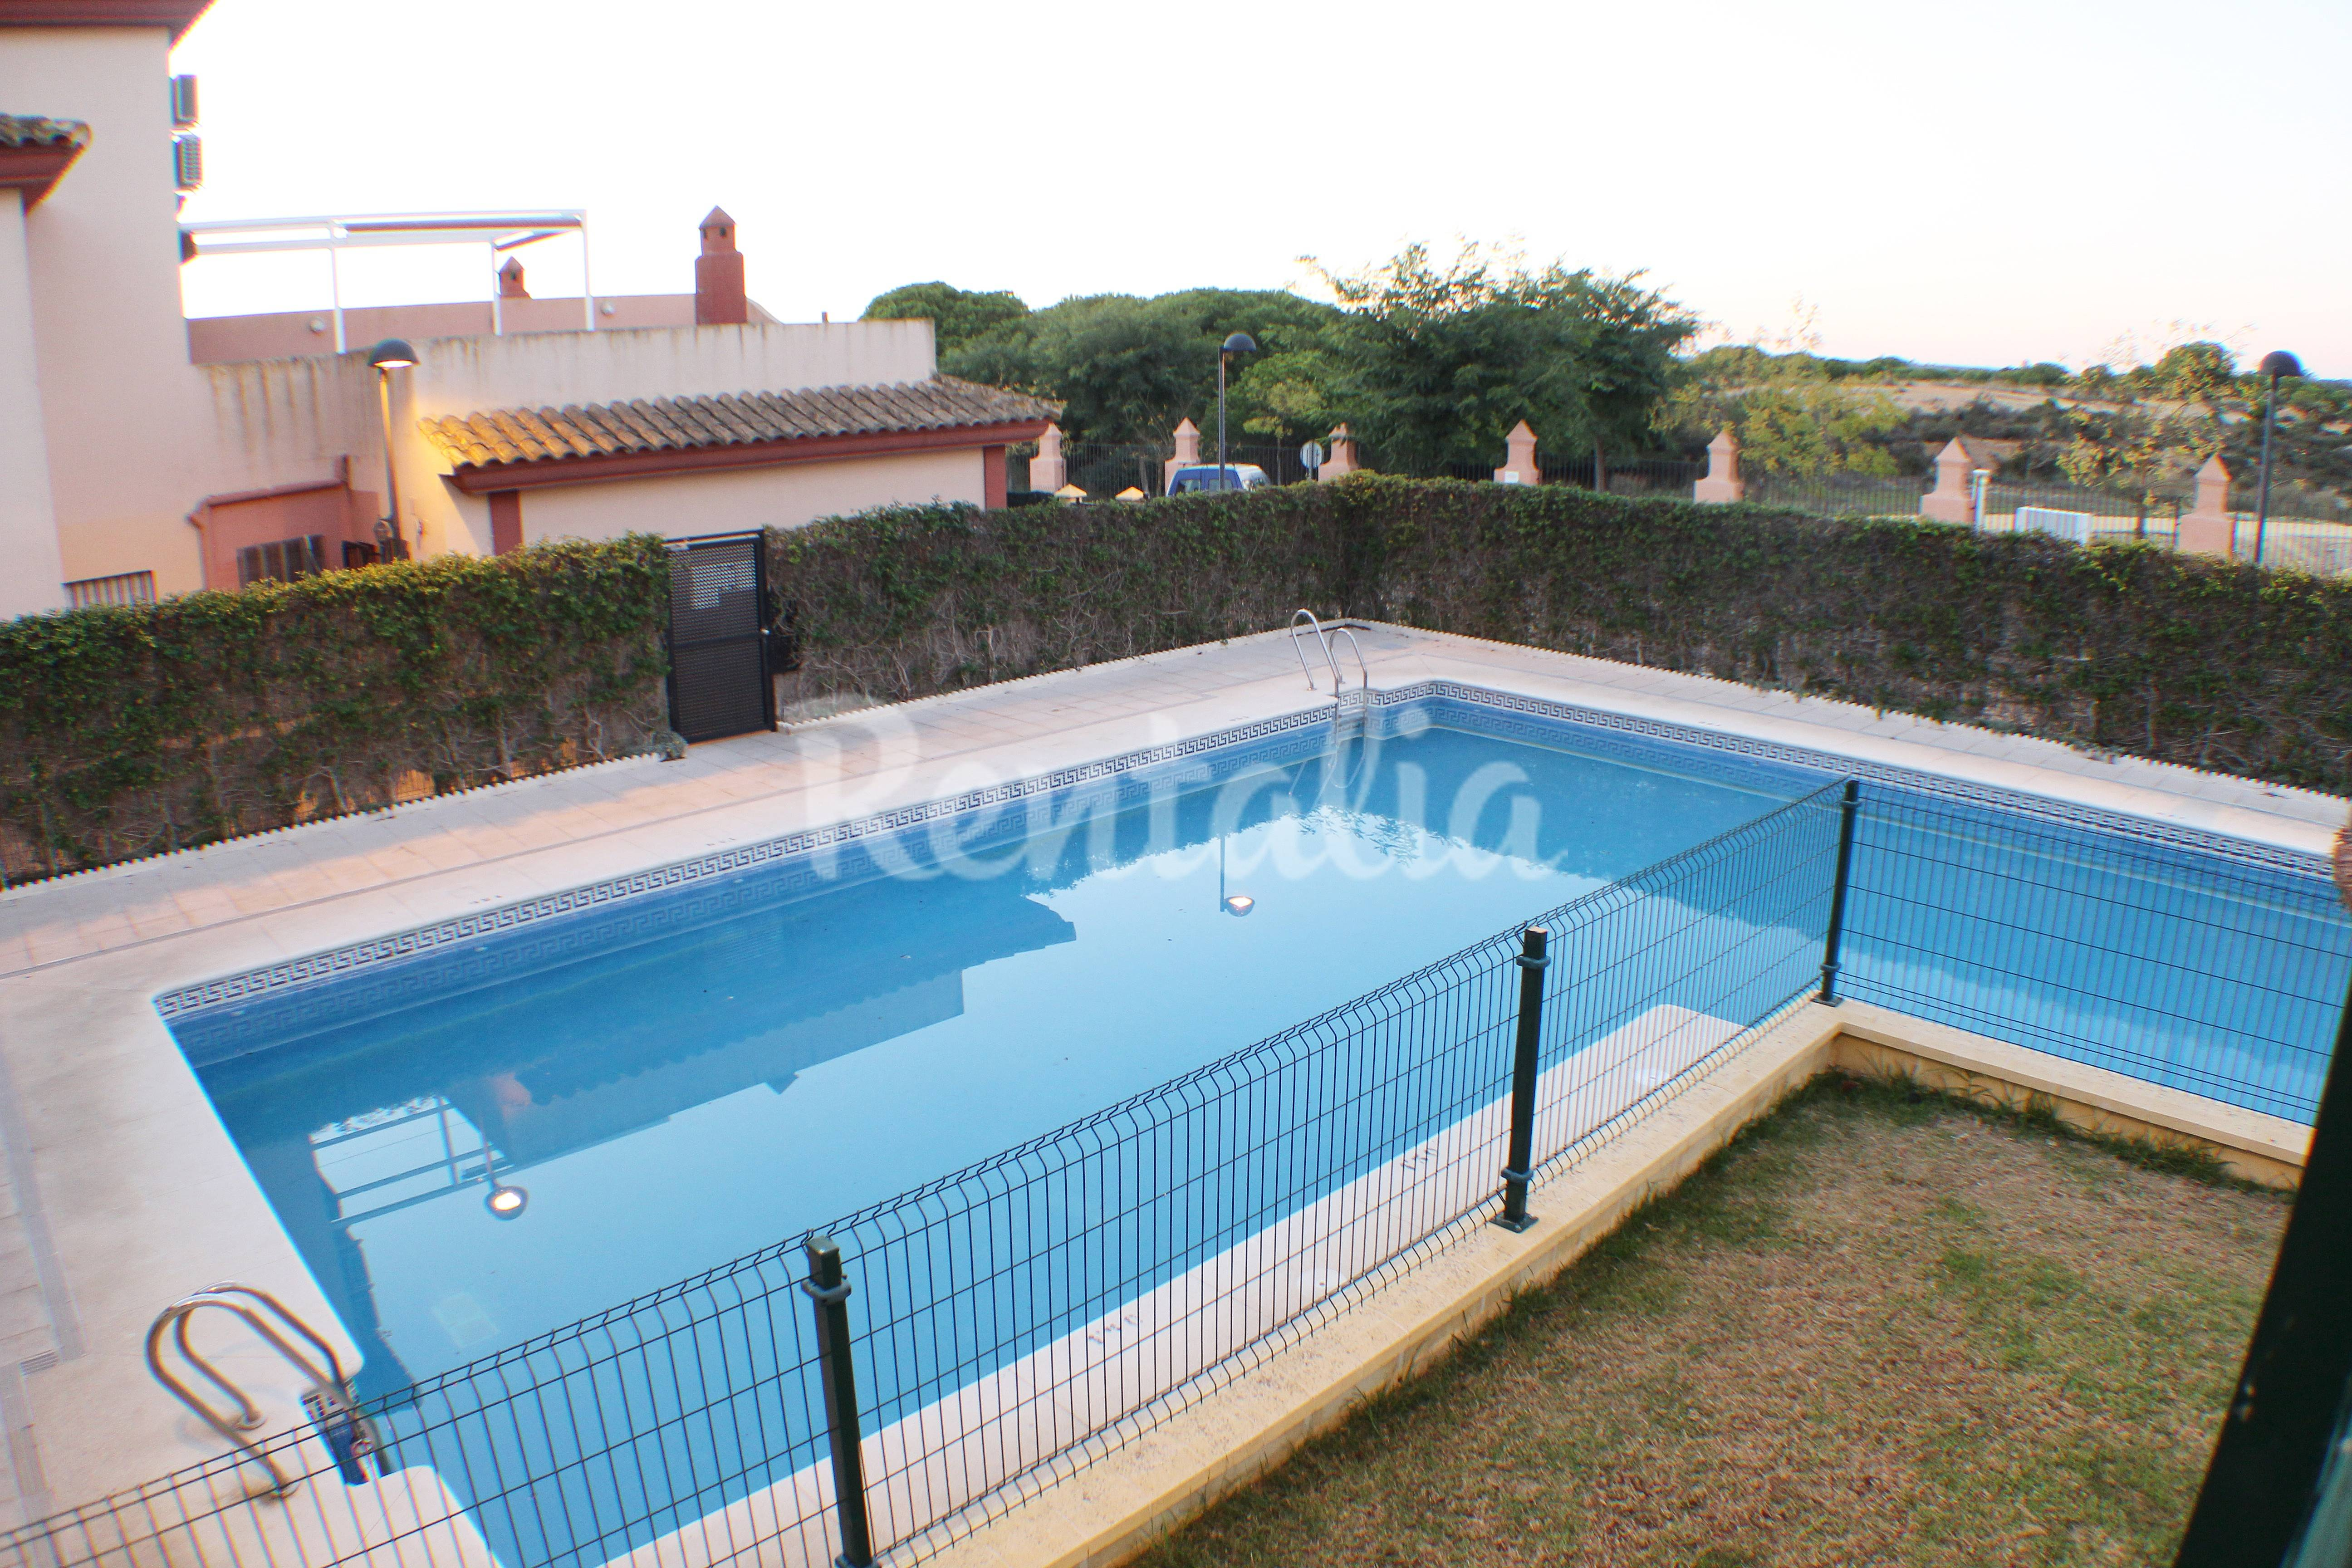 Apartment for rent only 800 meters from the beach - Rentalia islantilla ...